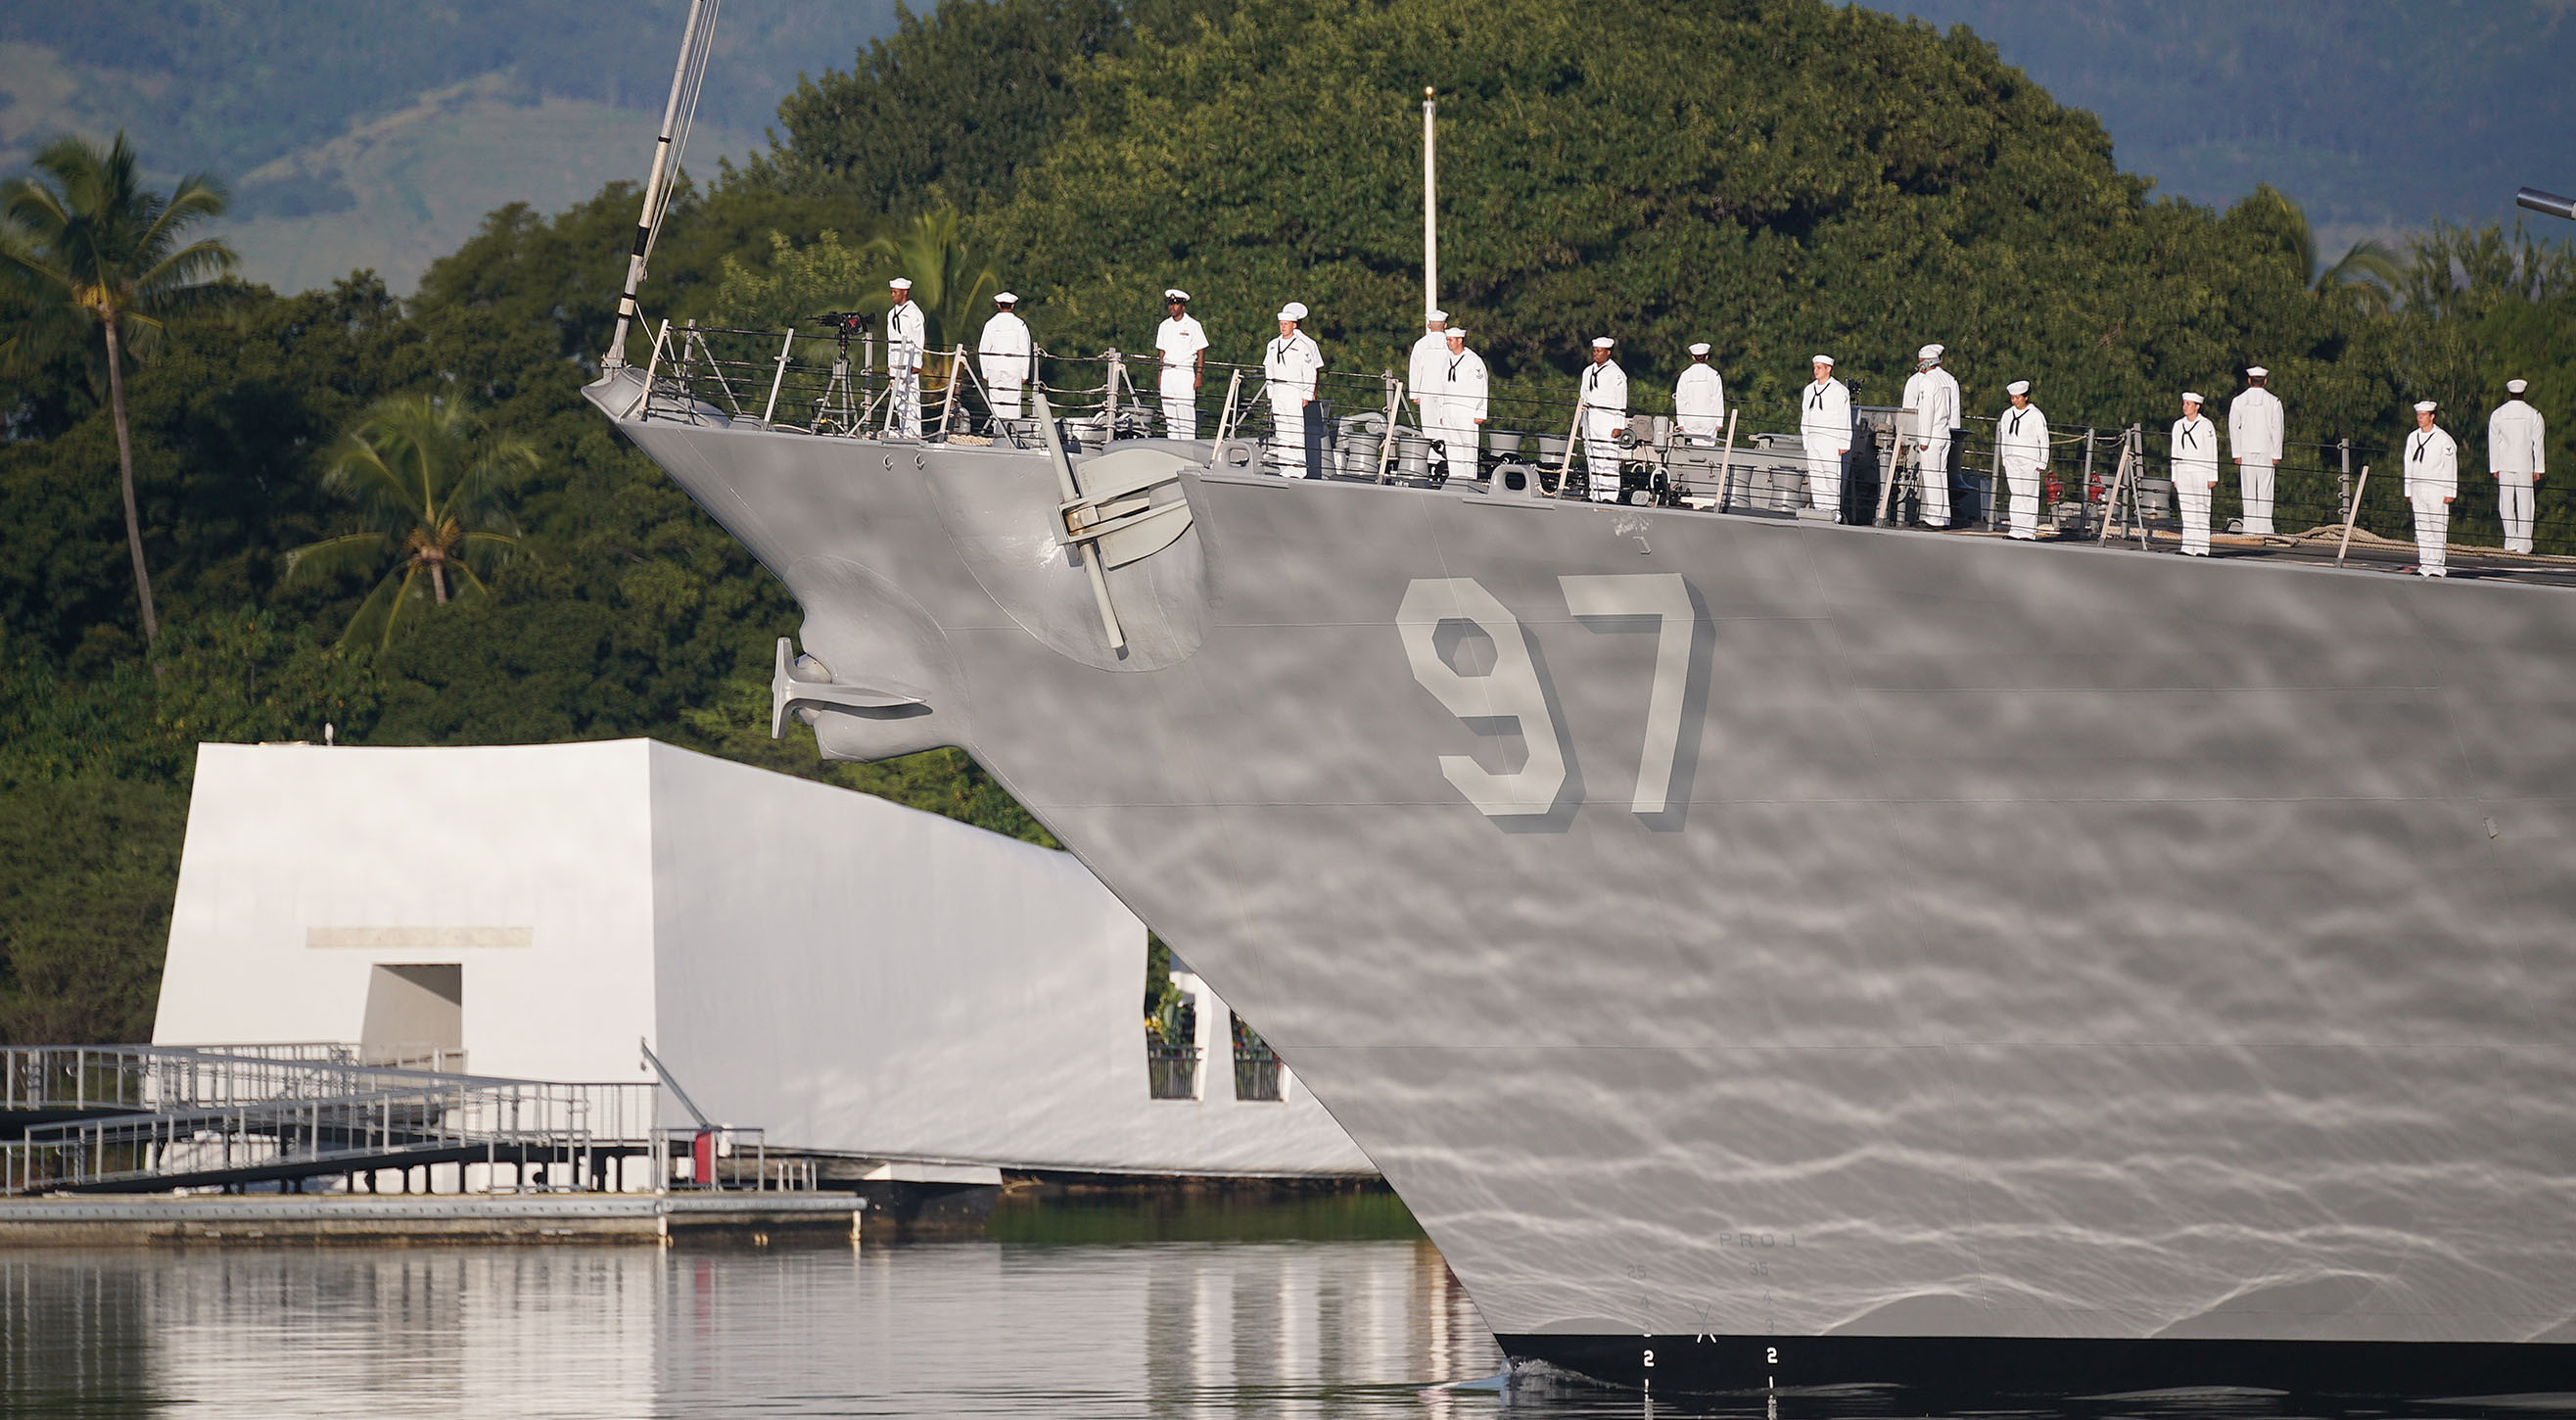 <p>The destroyer USS Halsey sailed past the USS Arizona Memorial in a pass-in-review during the ceremony. The destroyer was named in honorof Fleet Adm. William Halsey Jr., who commanded the aircraft carrier USS Enterprise that was based at Pearl Harbor but at sea during the attack.</p>